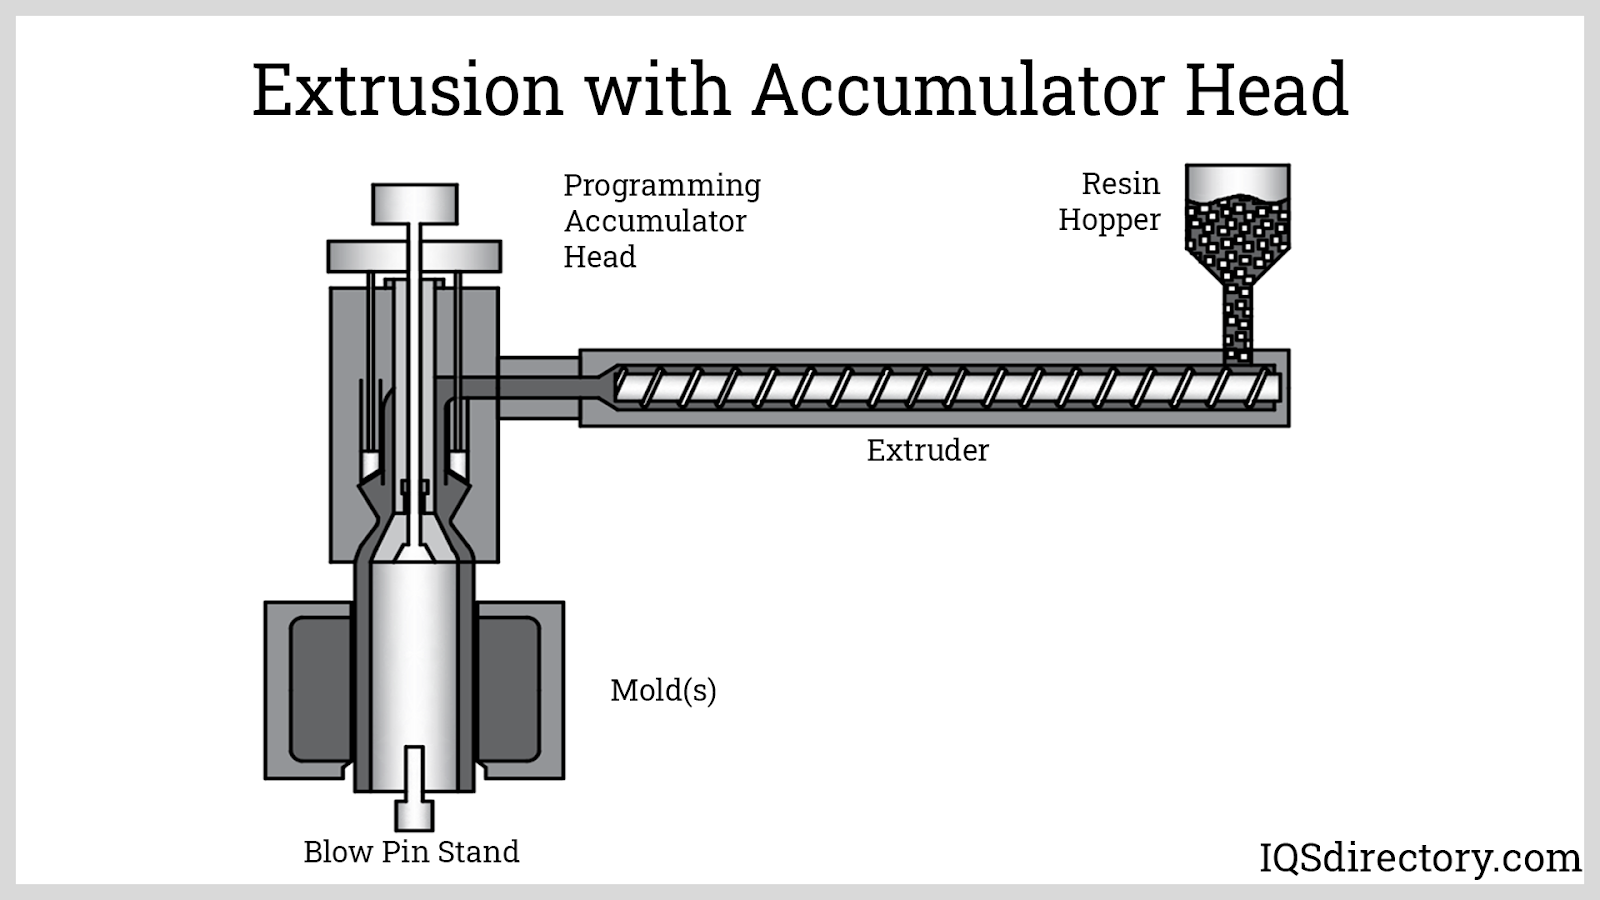 Extrusion with Accumulator Head